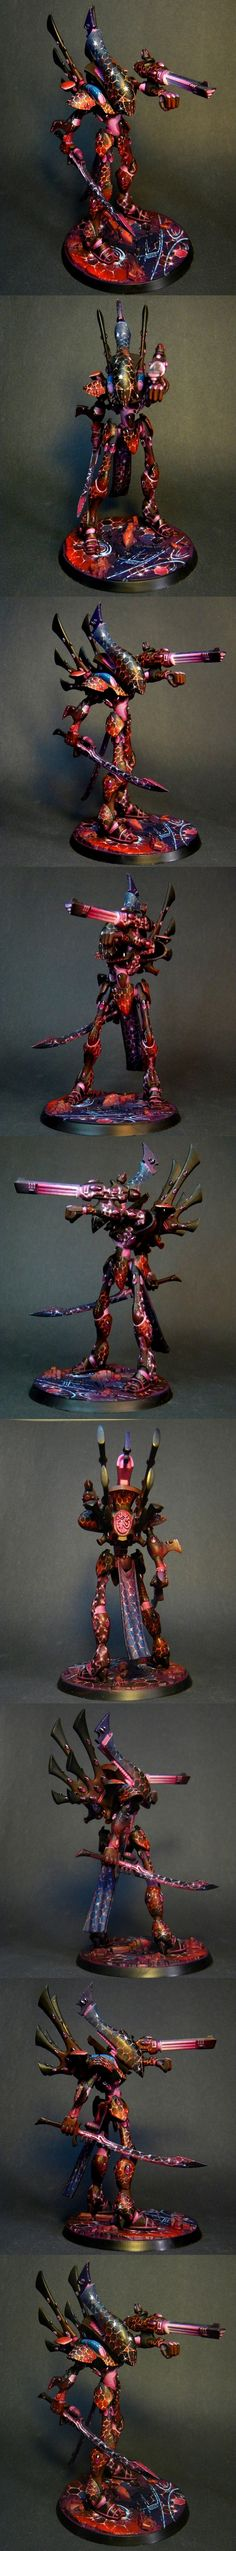 Eldar Wraithlord Spirit    The freehand is ridonculous.